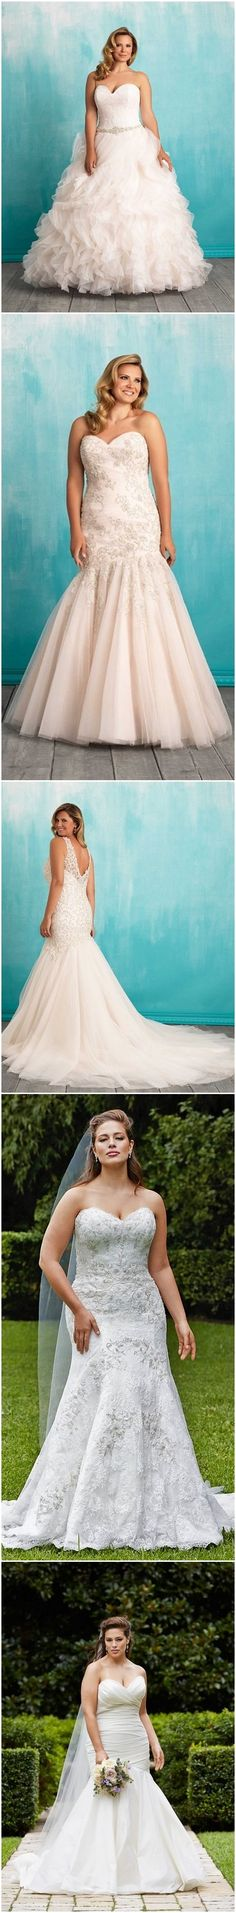 Gorgeous Plus-Size Wedding Dresses / http://www.himisspuff.com/plus-size-wedding-dresses/